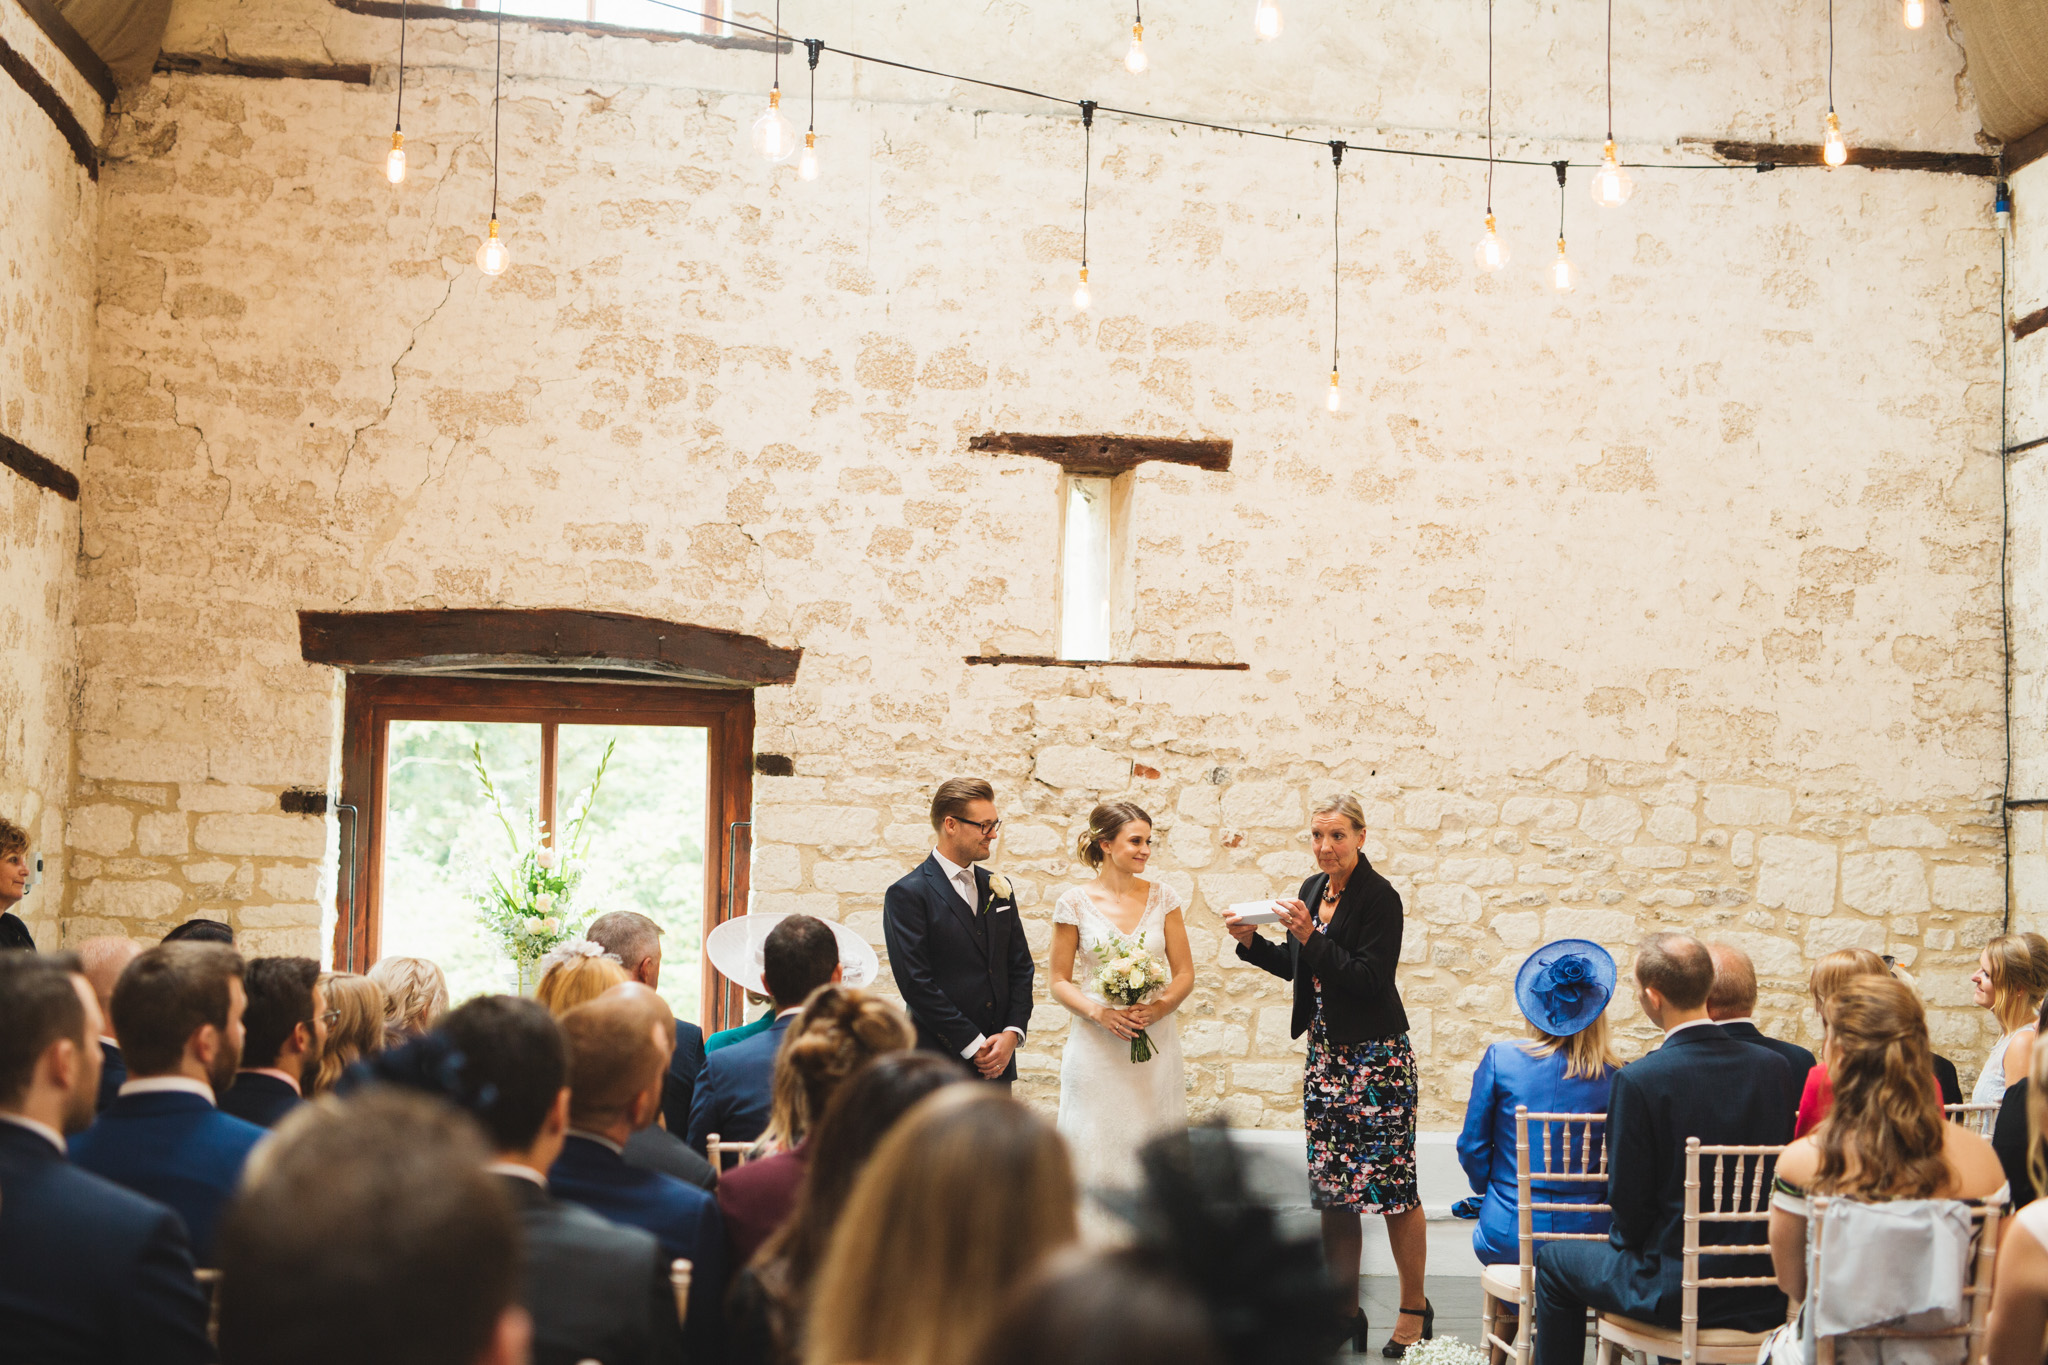 cat-lane-weddings__gorwell-barn-wedding-photography__clw__1443__X6A5449.jpg